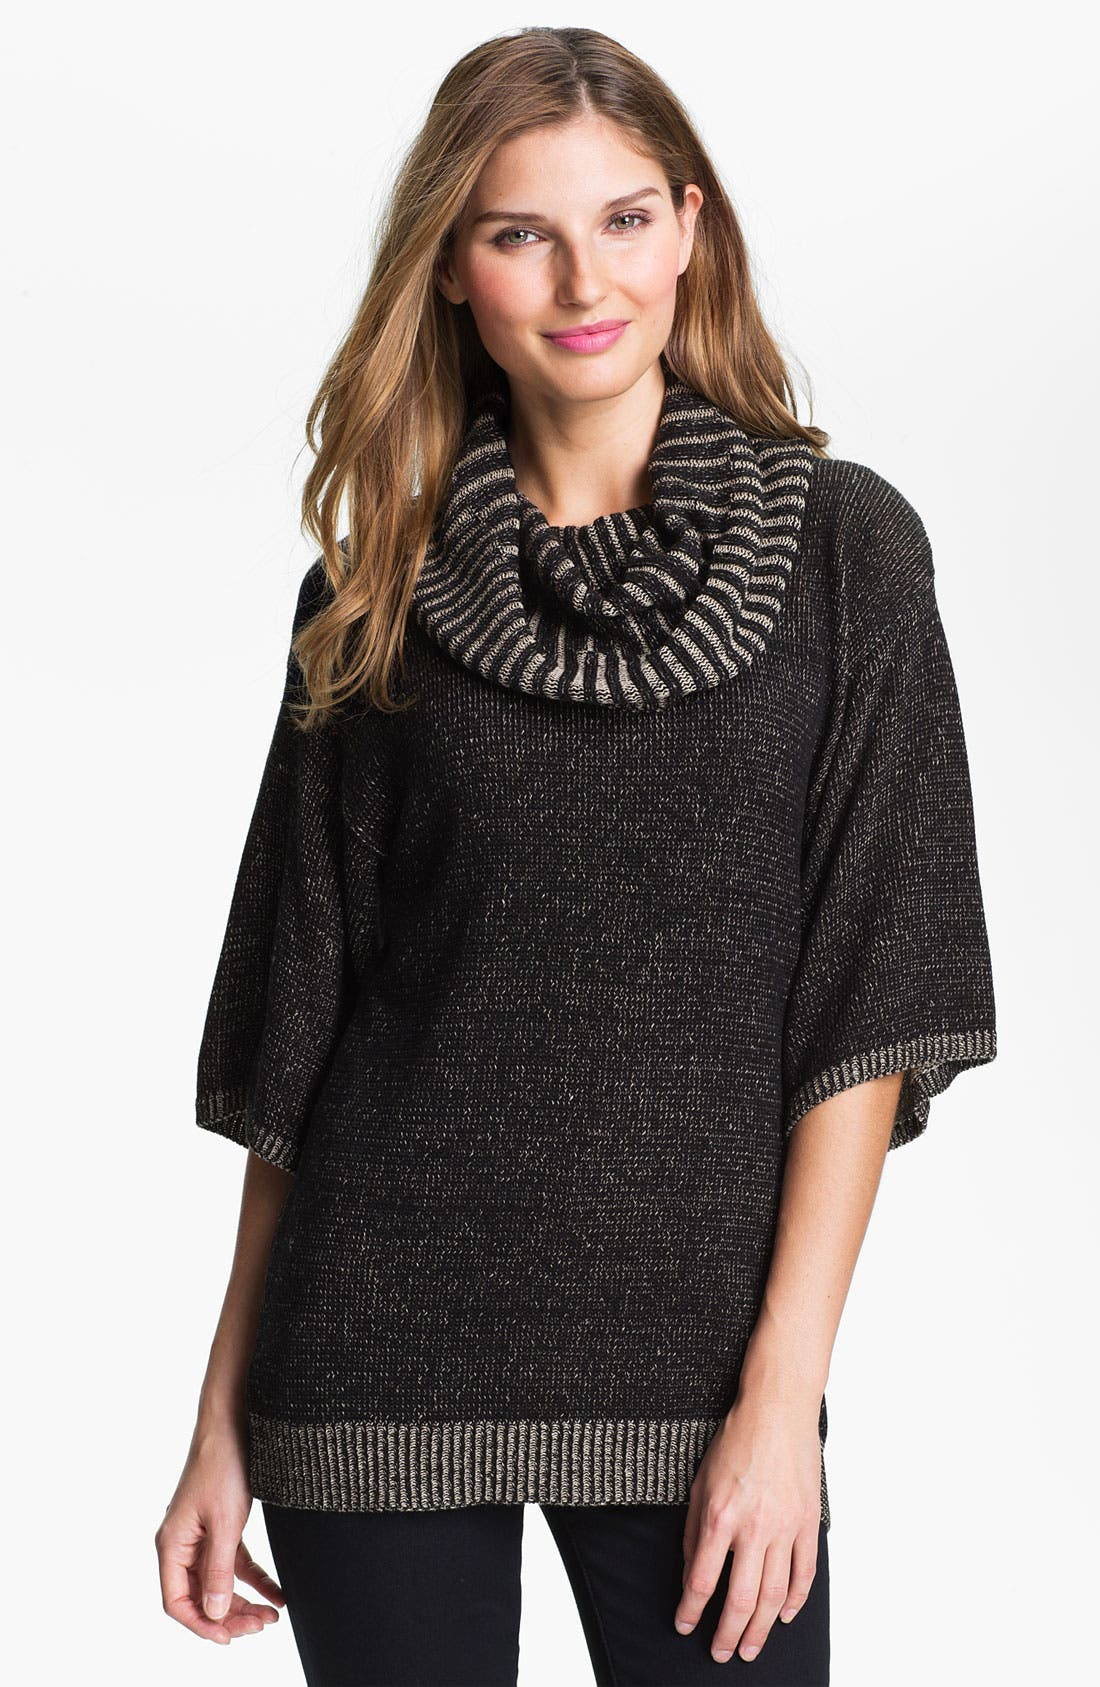 Alternate Image 1 Selected - Fever Cowl Neck Three Quarter Sleeve Sweater (Online Exclusive)